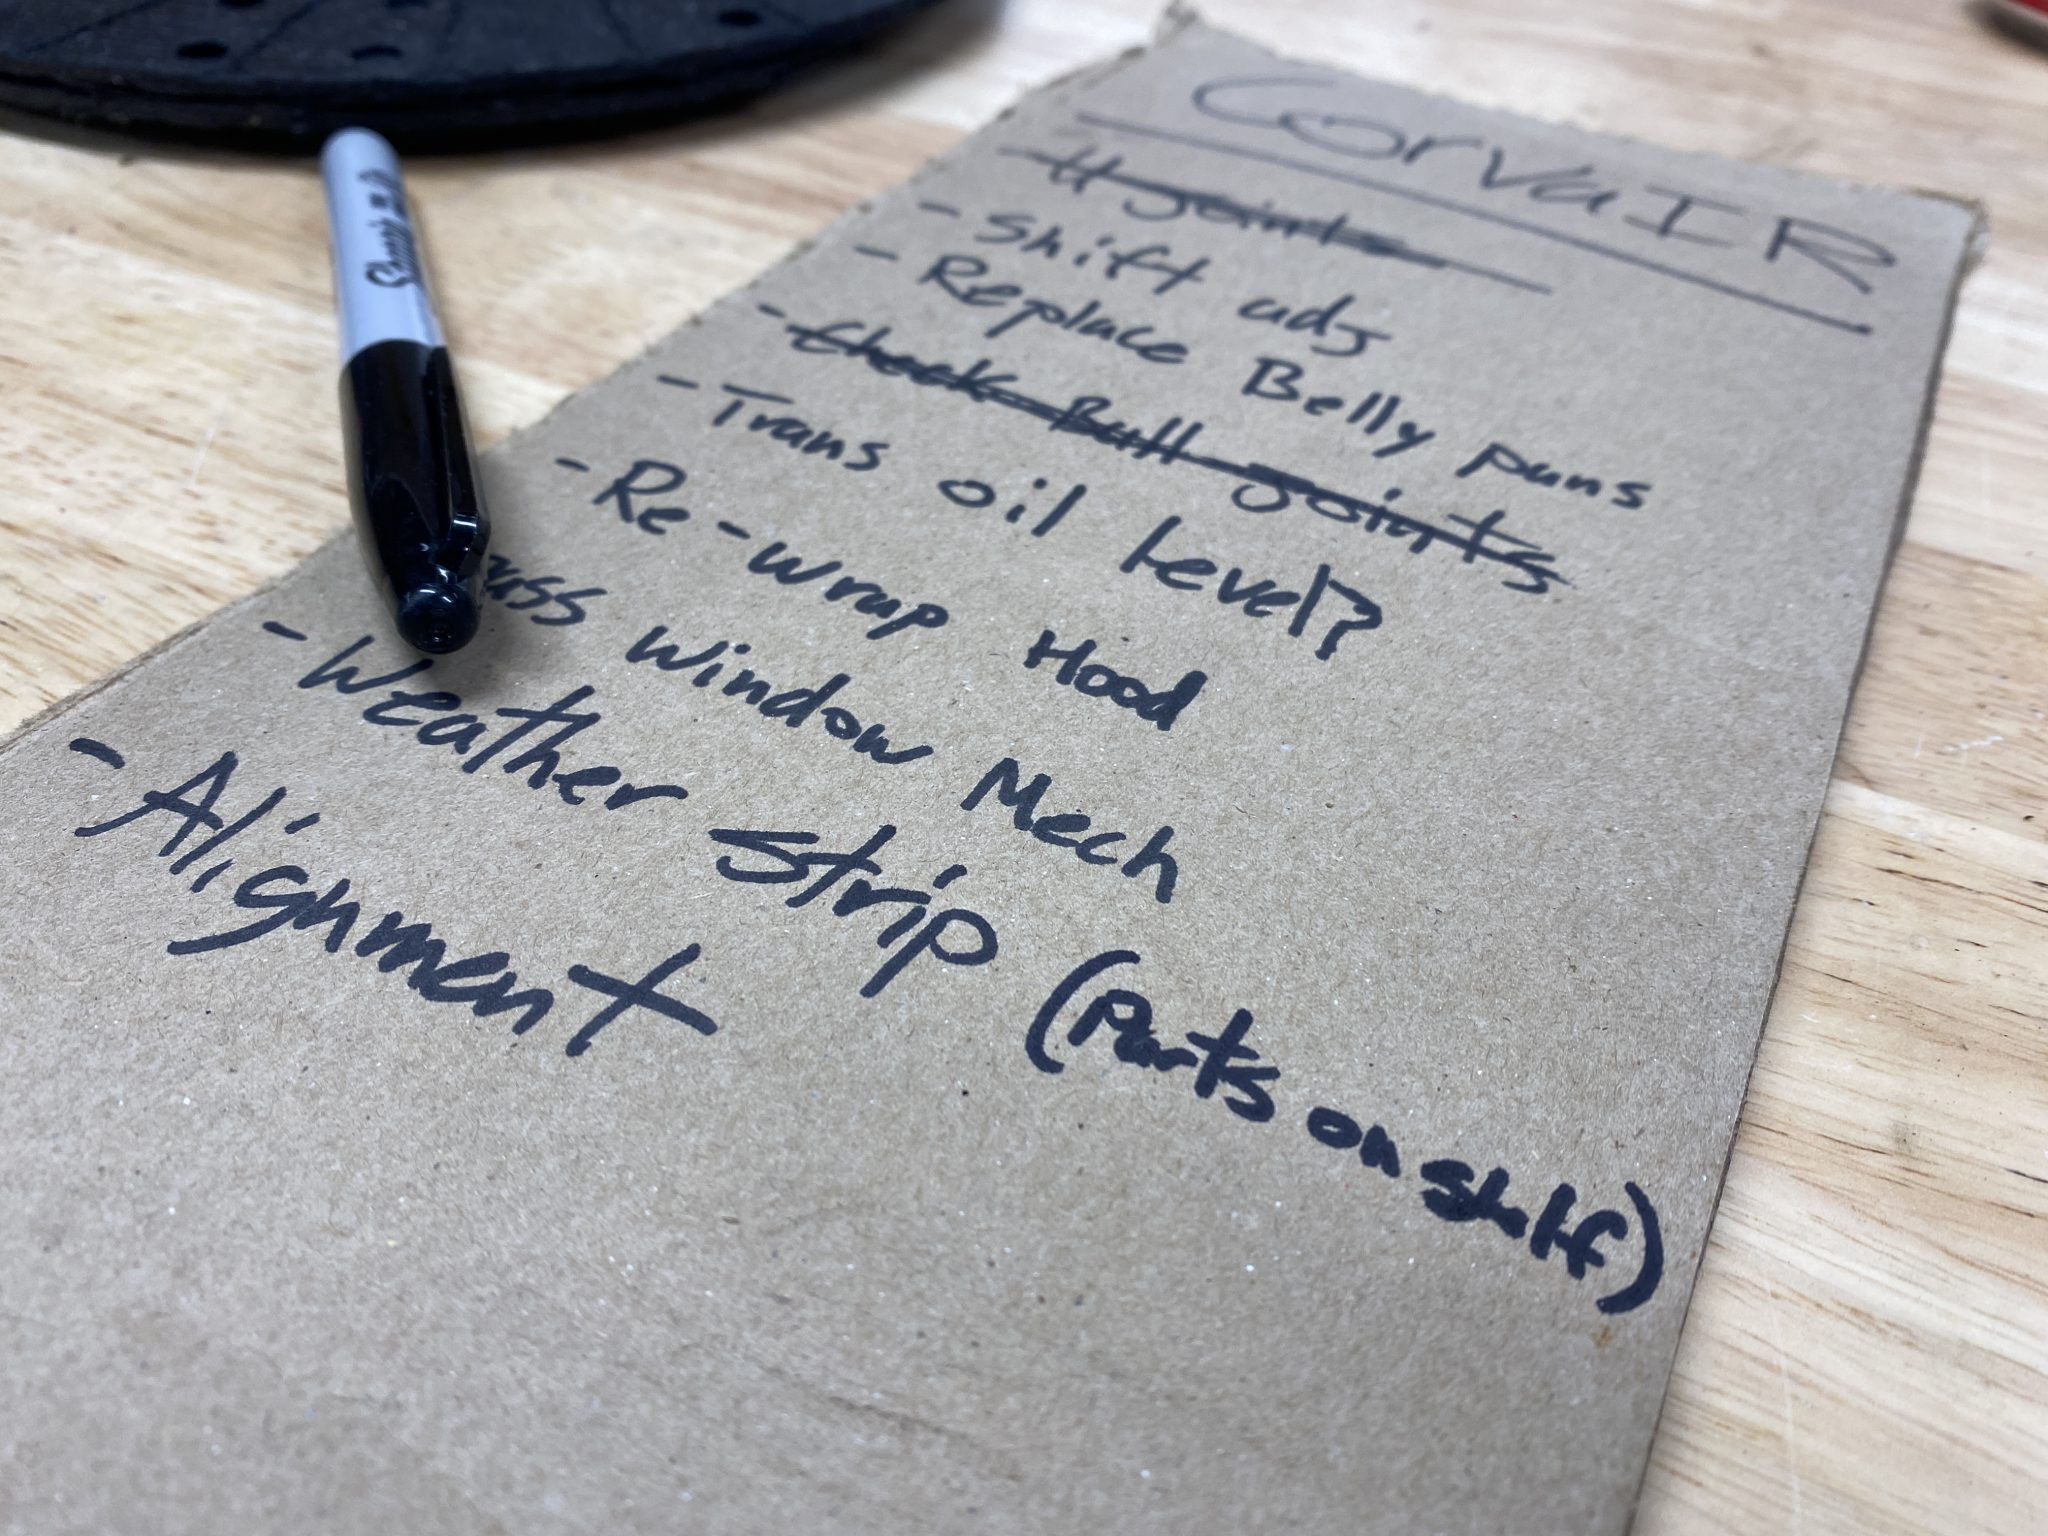 Write a to-do list for your project car, even if it's a bit depressing